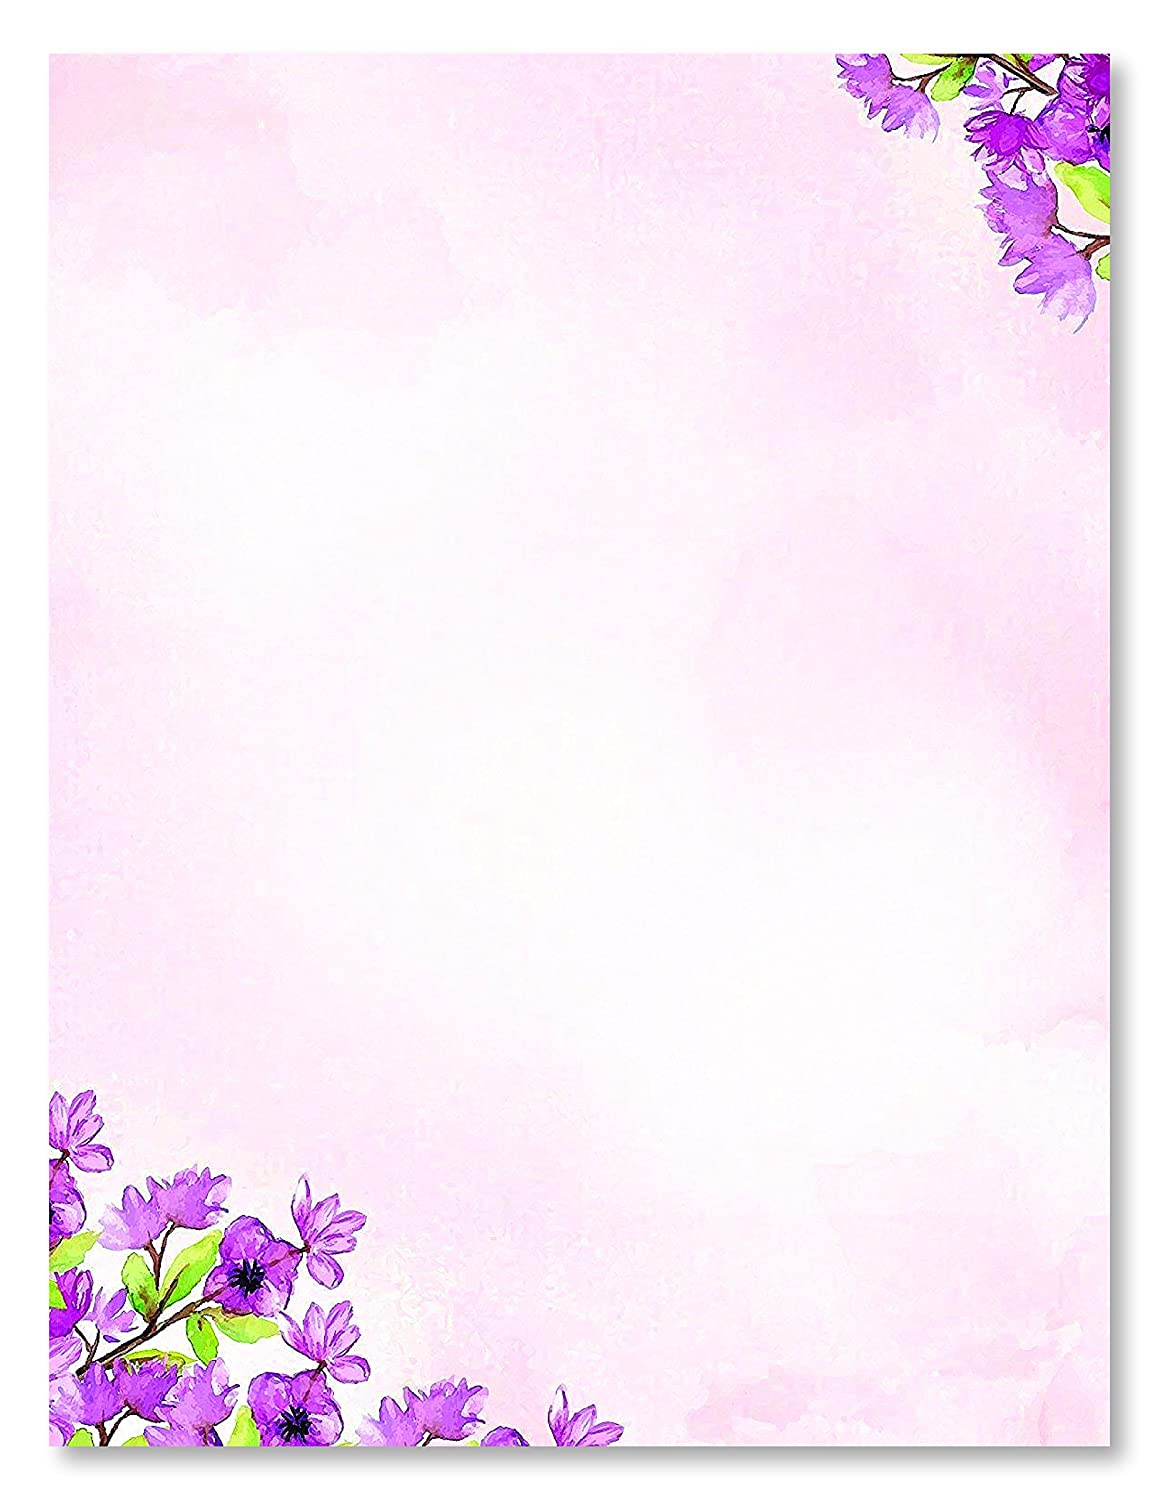 Amazon 100 Stationery Writing Paper With Cute Floral Designs